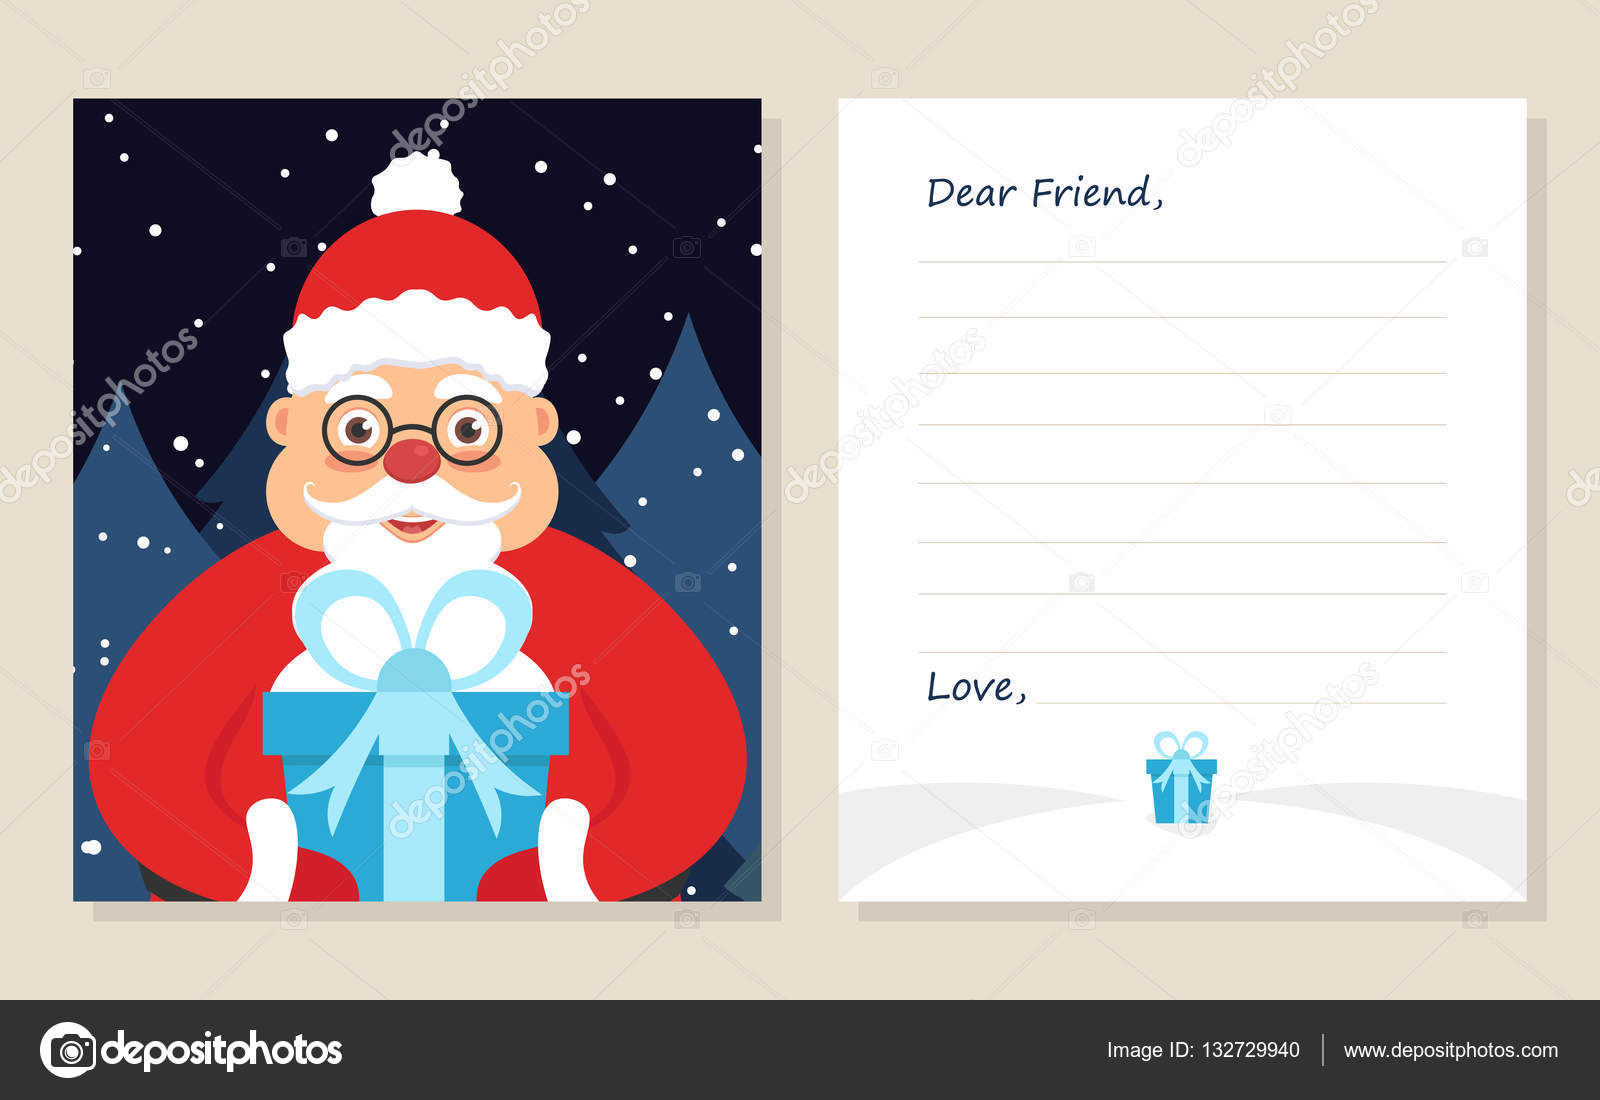 Template Greeting Card New Years Or Merry Christmas Letter To Dear Friend Cute Santa In